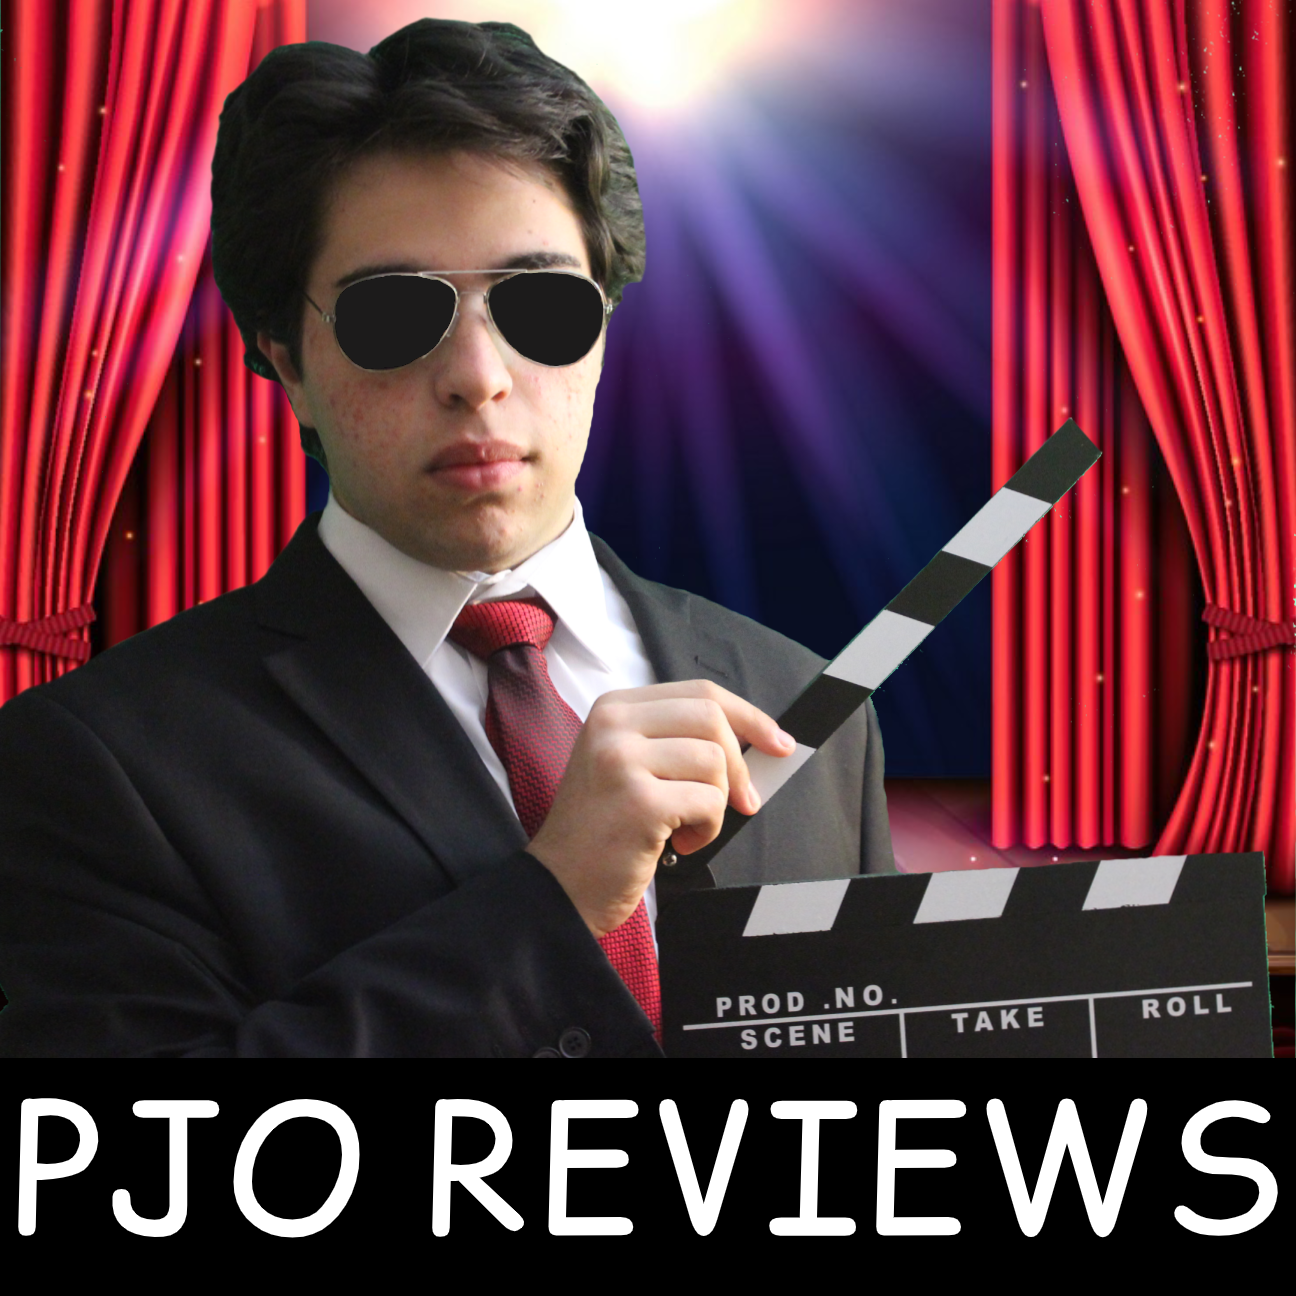 PJO Reviews: bringing you his comments on the movies.